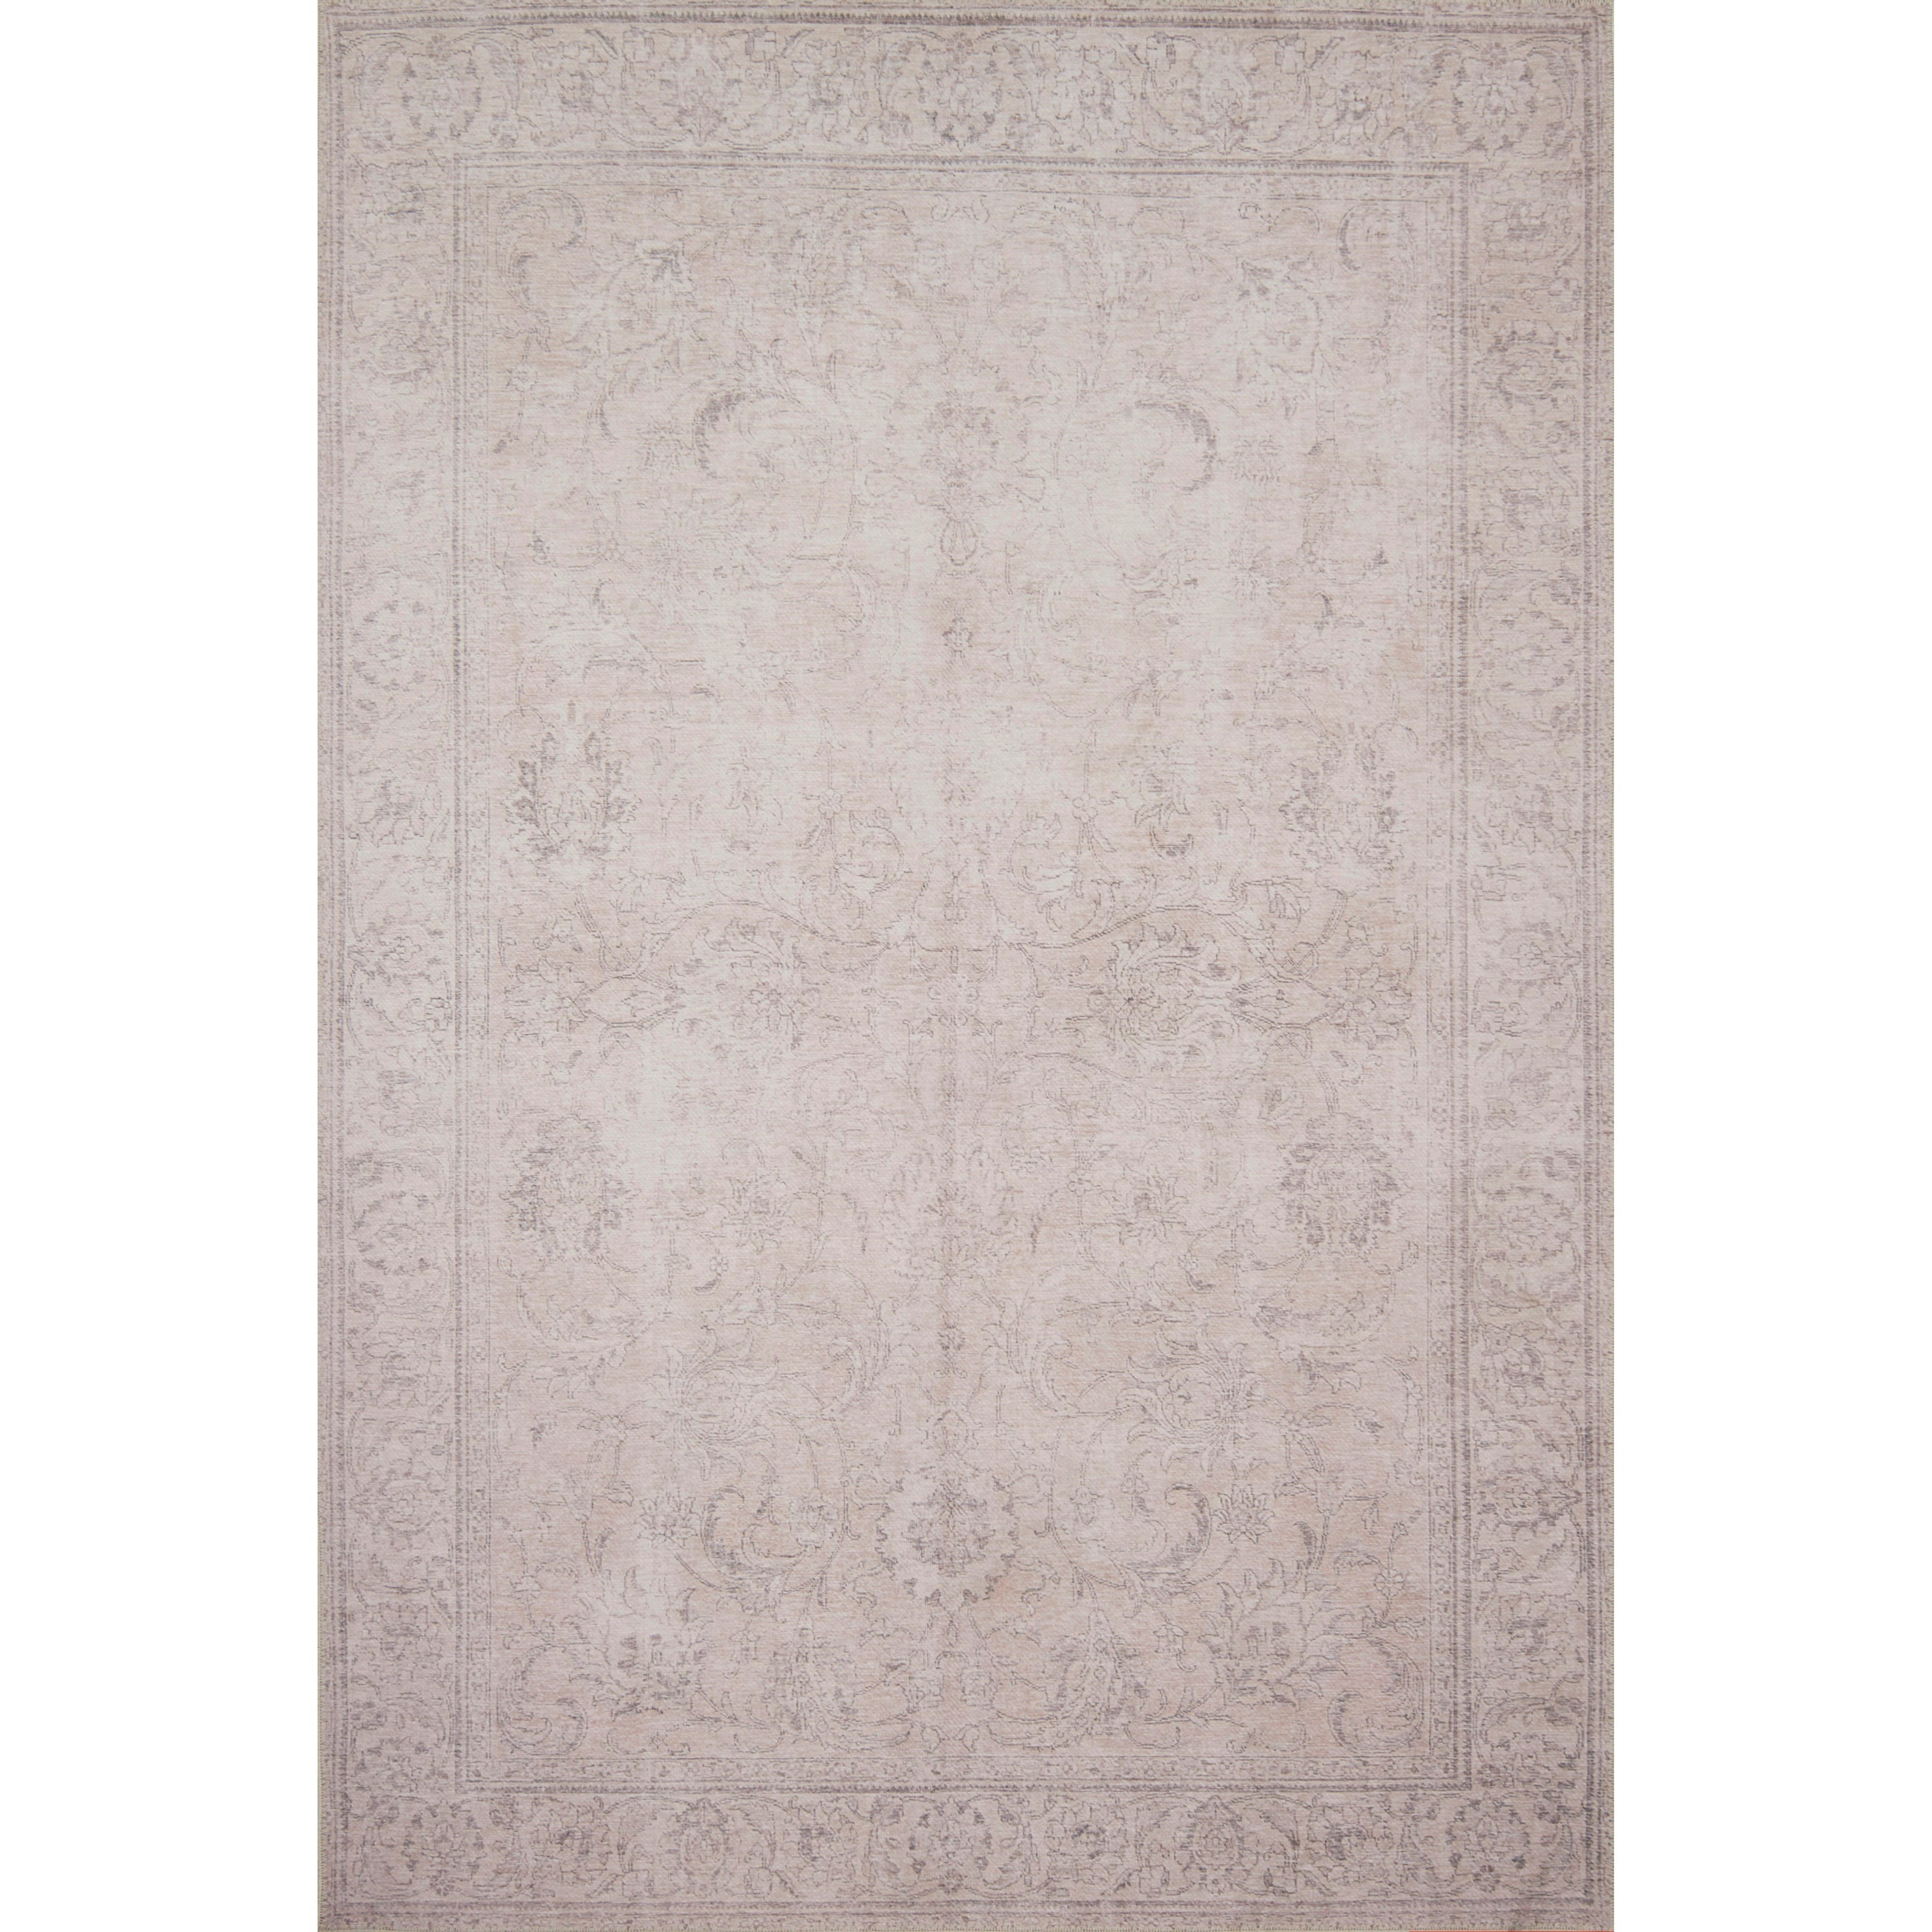 "Loren 8'4"" x 11'6"" Sand Rug by Loloi Rugs at Sprintz Furniture"